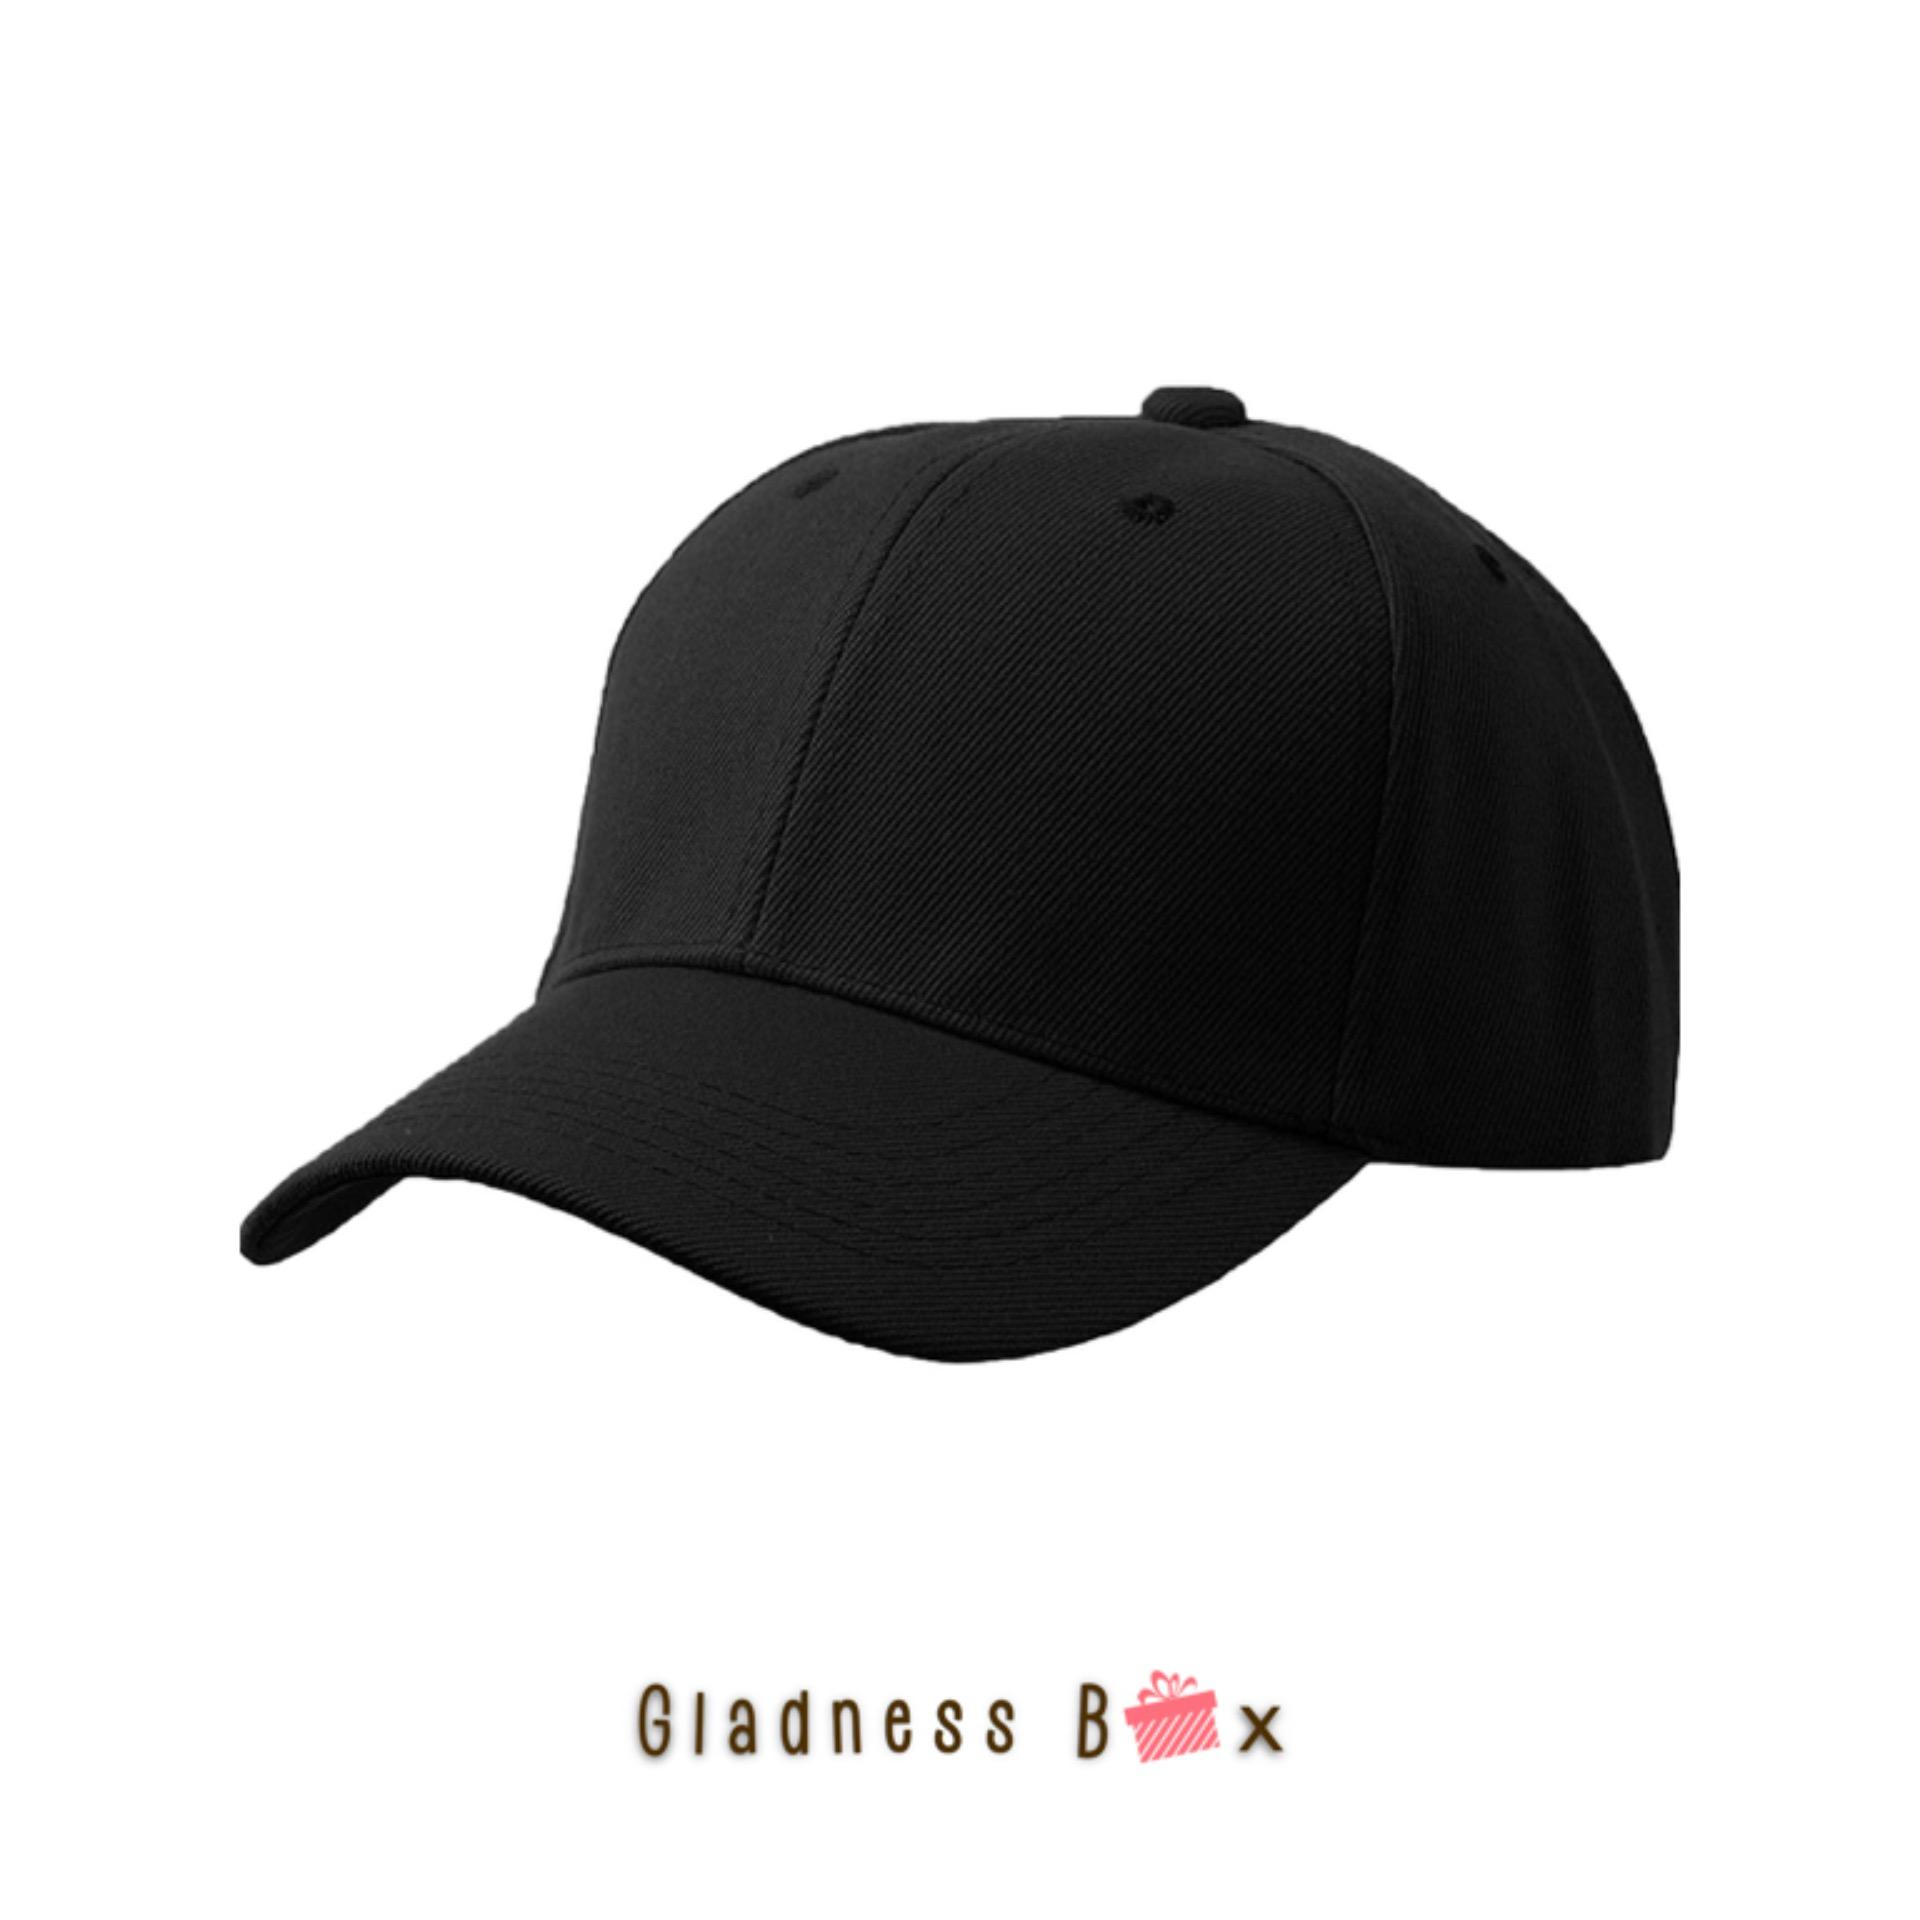 Gladness Box High Quality Plain Baseball Cap for Men Women Unisex 314ccb6896fa